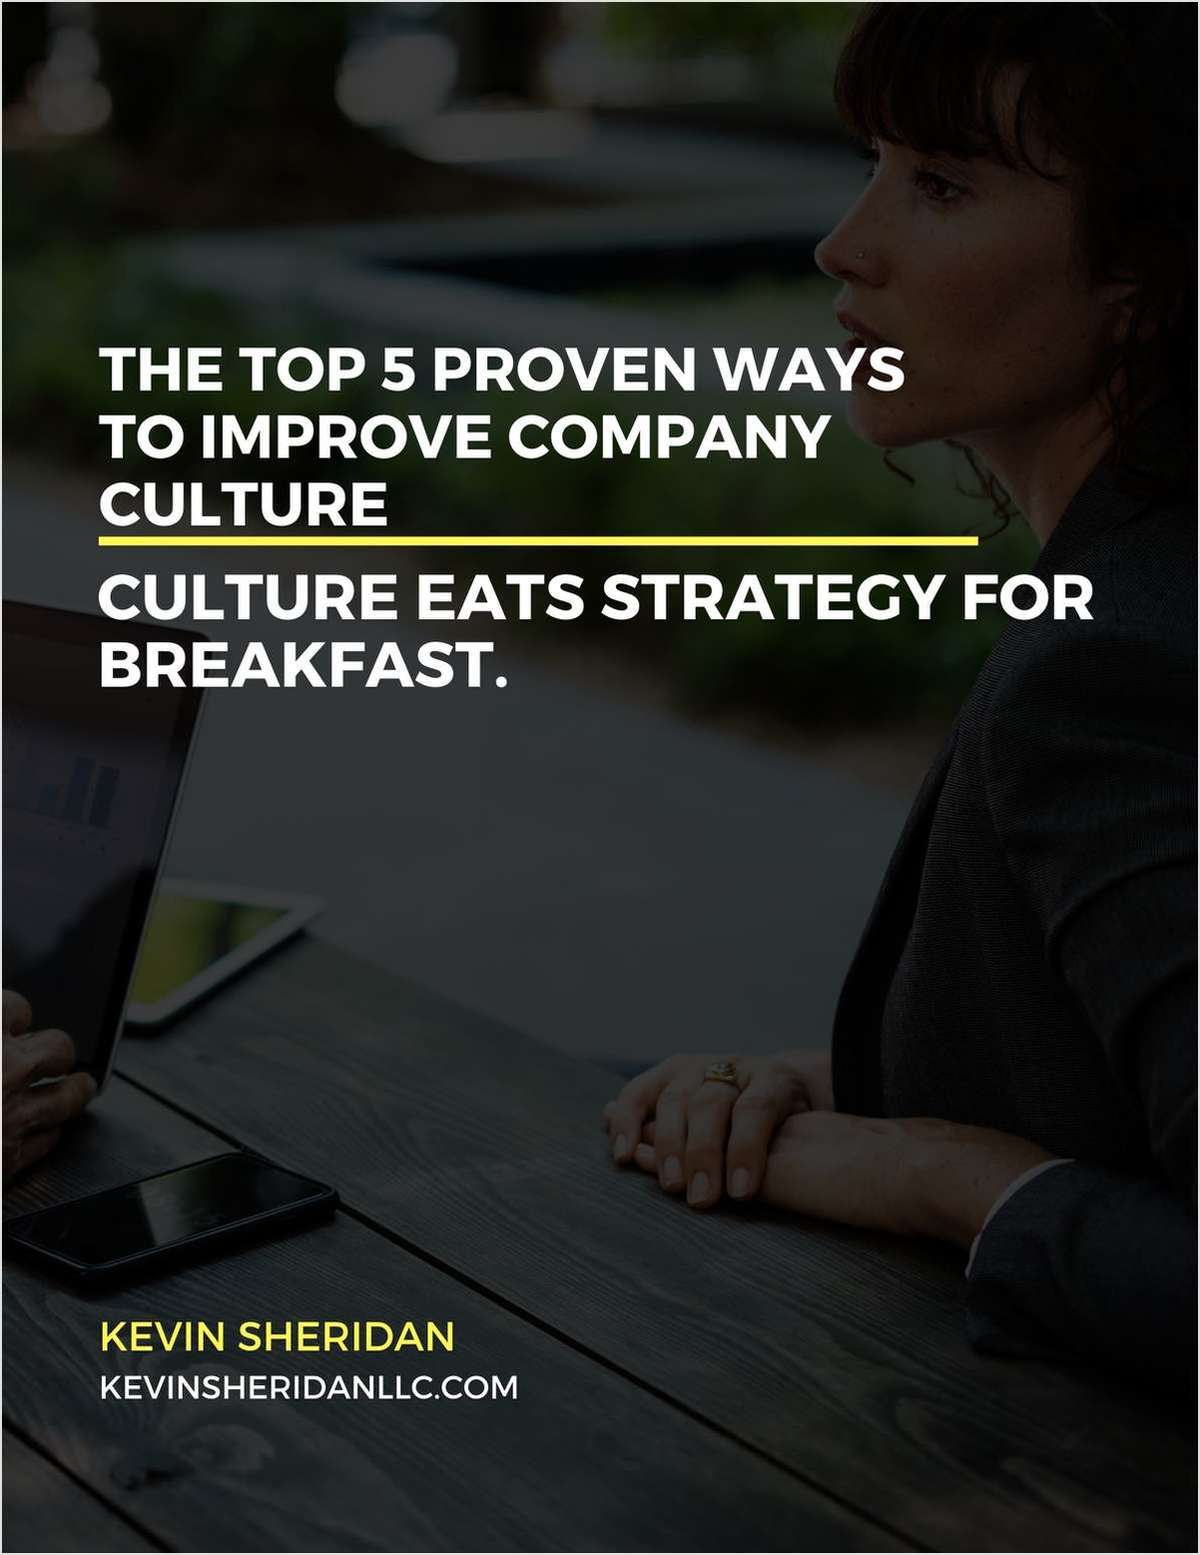 The Top 5 Proven Ways To Improve Company Culture